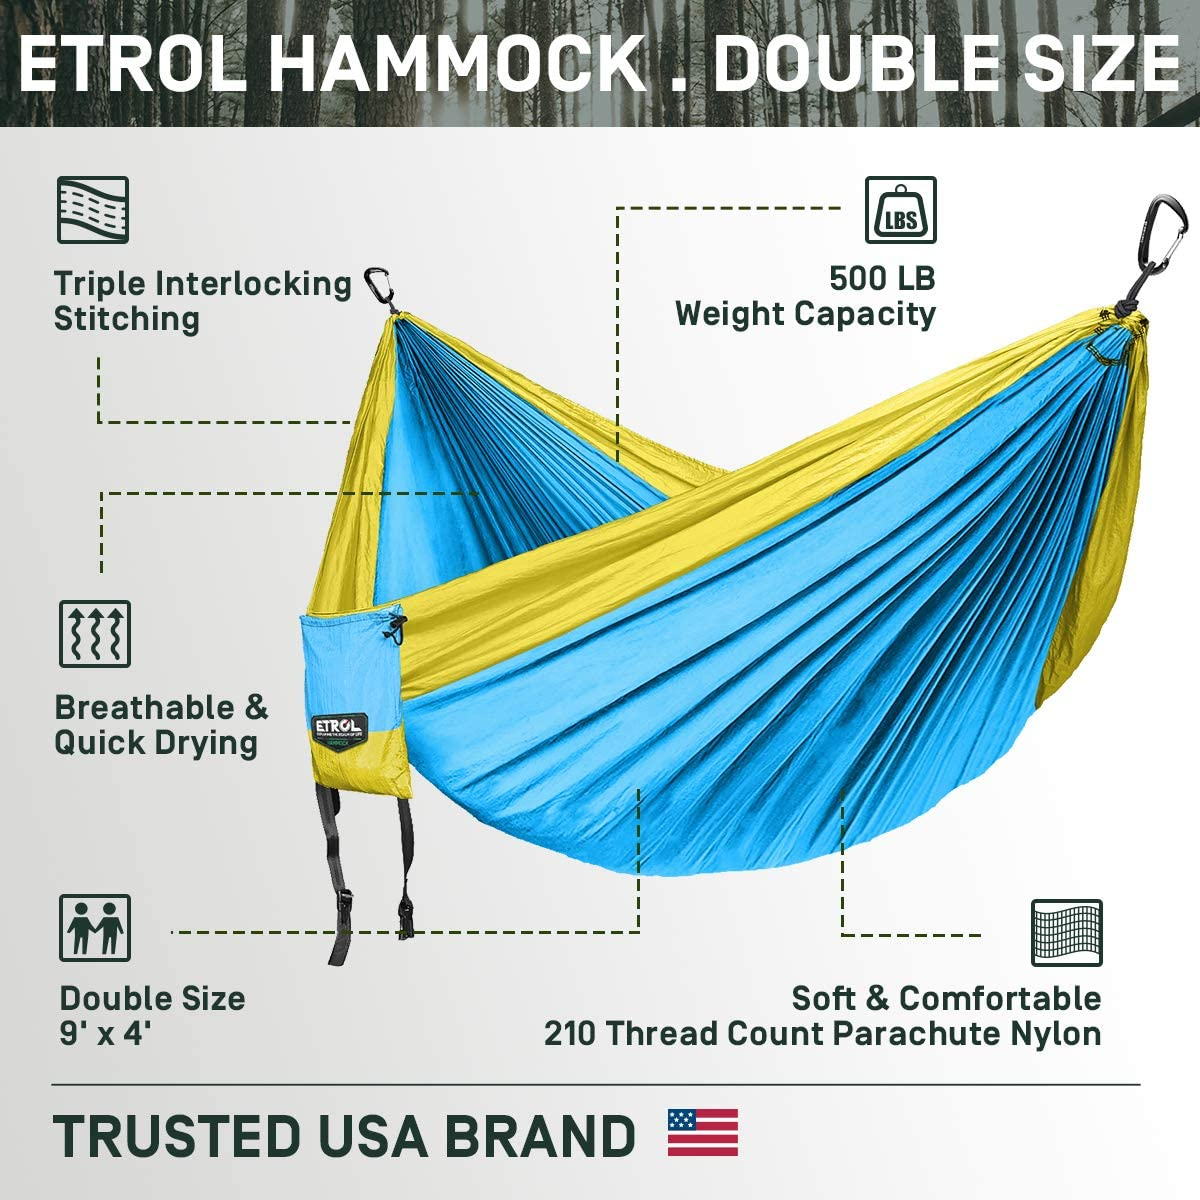 ETROL Upgraded 2 in 1 Large Camping Hammock or Only Mosquito Net, Pop-Up Lightweight Portable Hanging Hammocks with Tree Straps, Swing Sleeping Hammock Double for Outdoor, Hiking, Backpacking, Travel